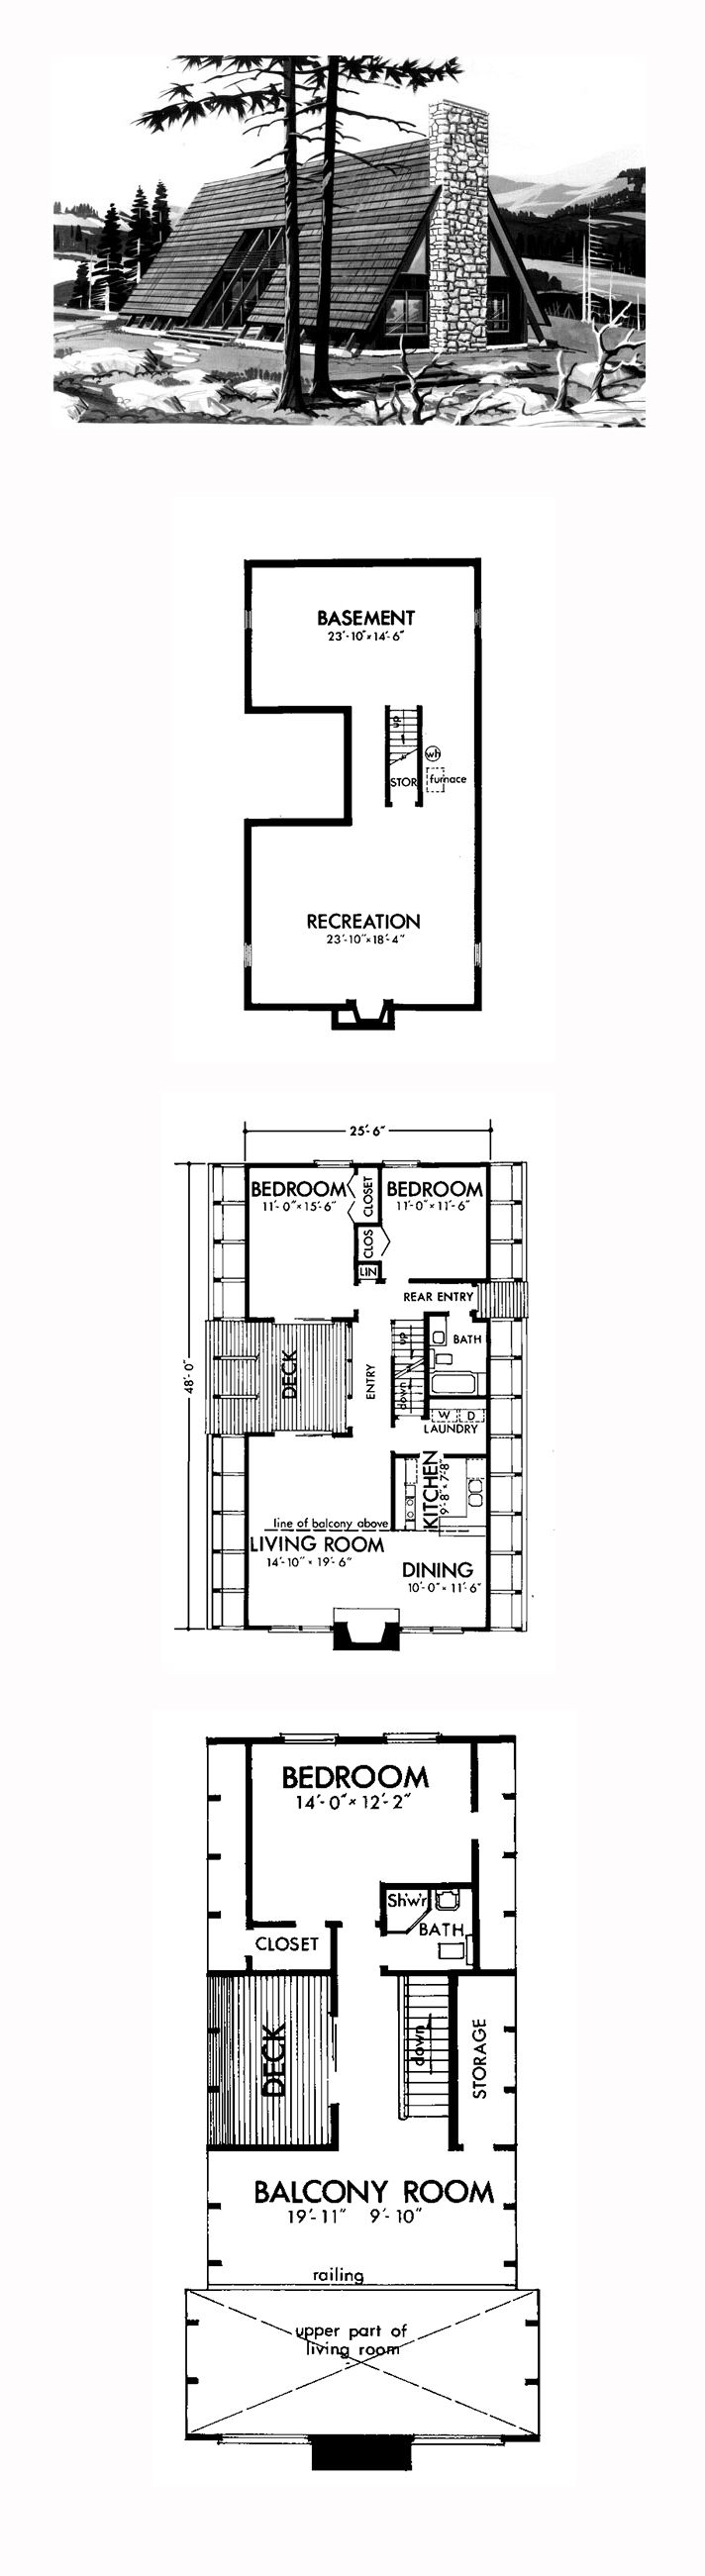 a frame style cool house plan id chp 40622 total living area